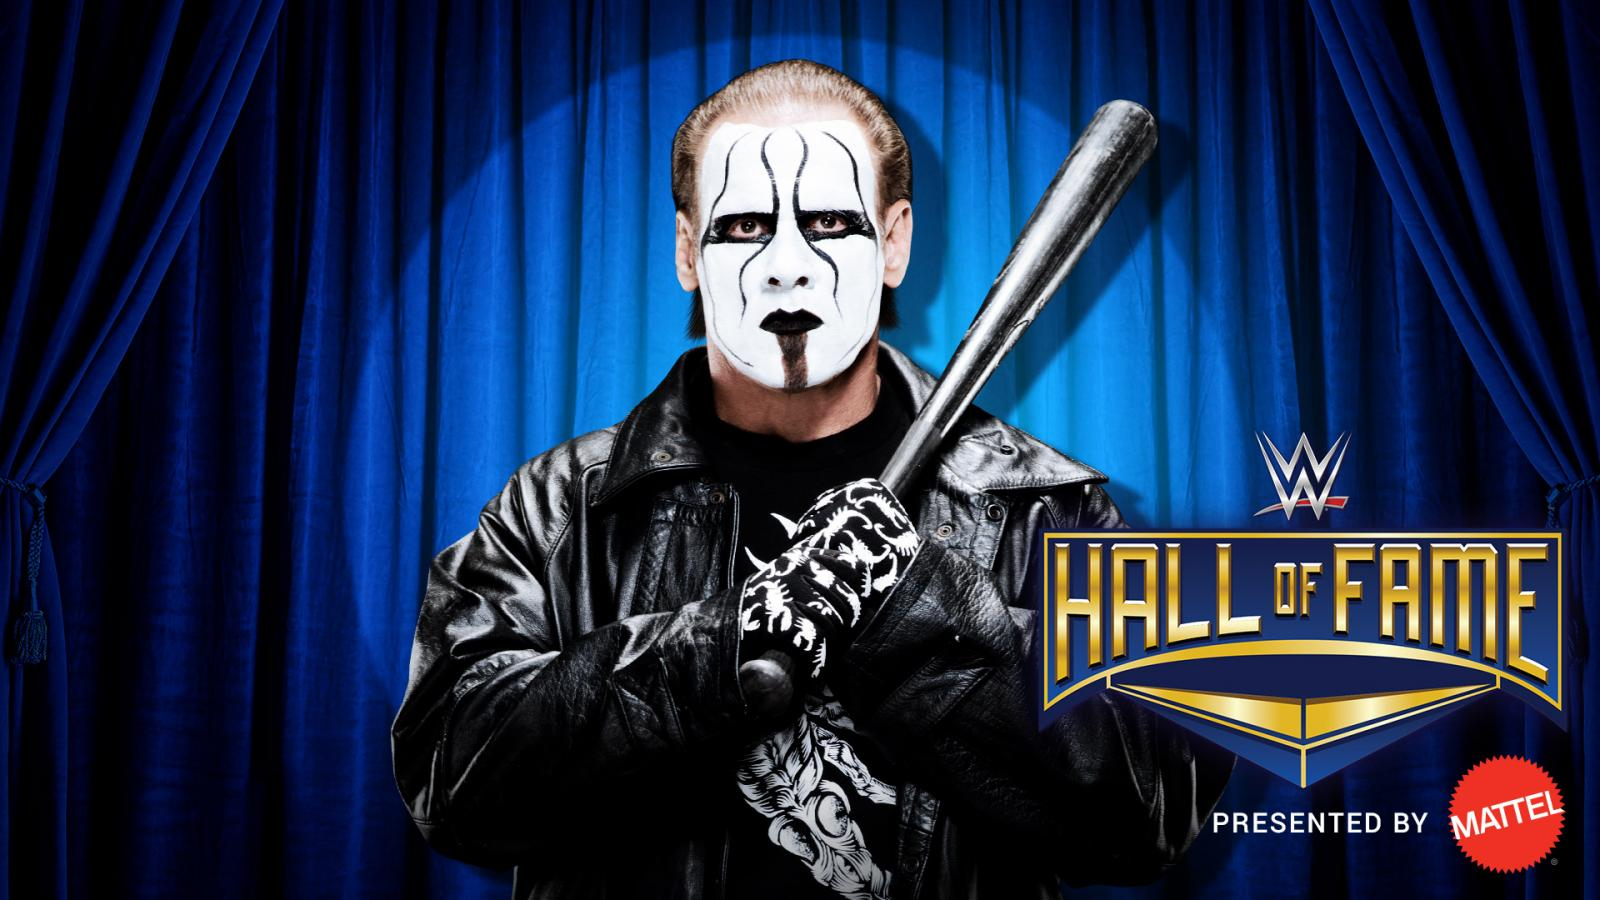 WWE Hall of Fame 2016: Watch Sting's Induction (Video)